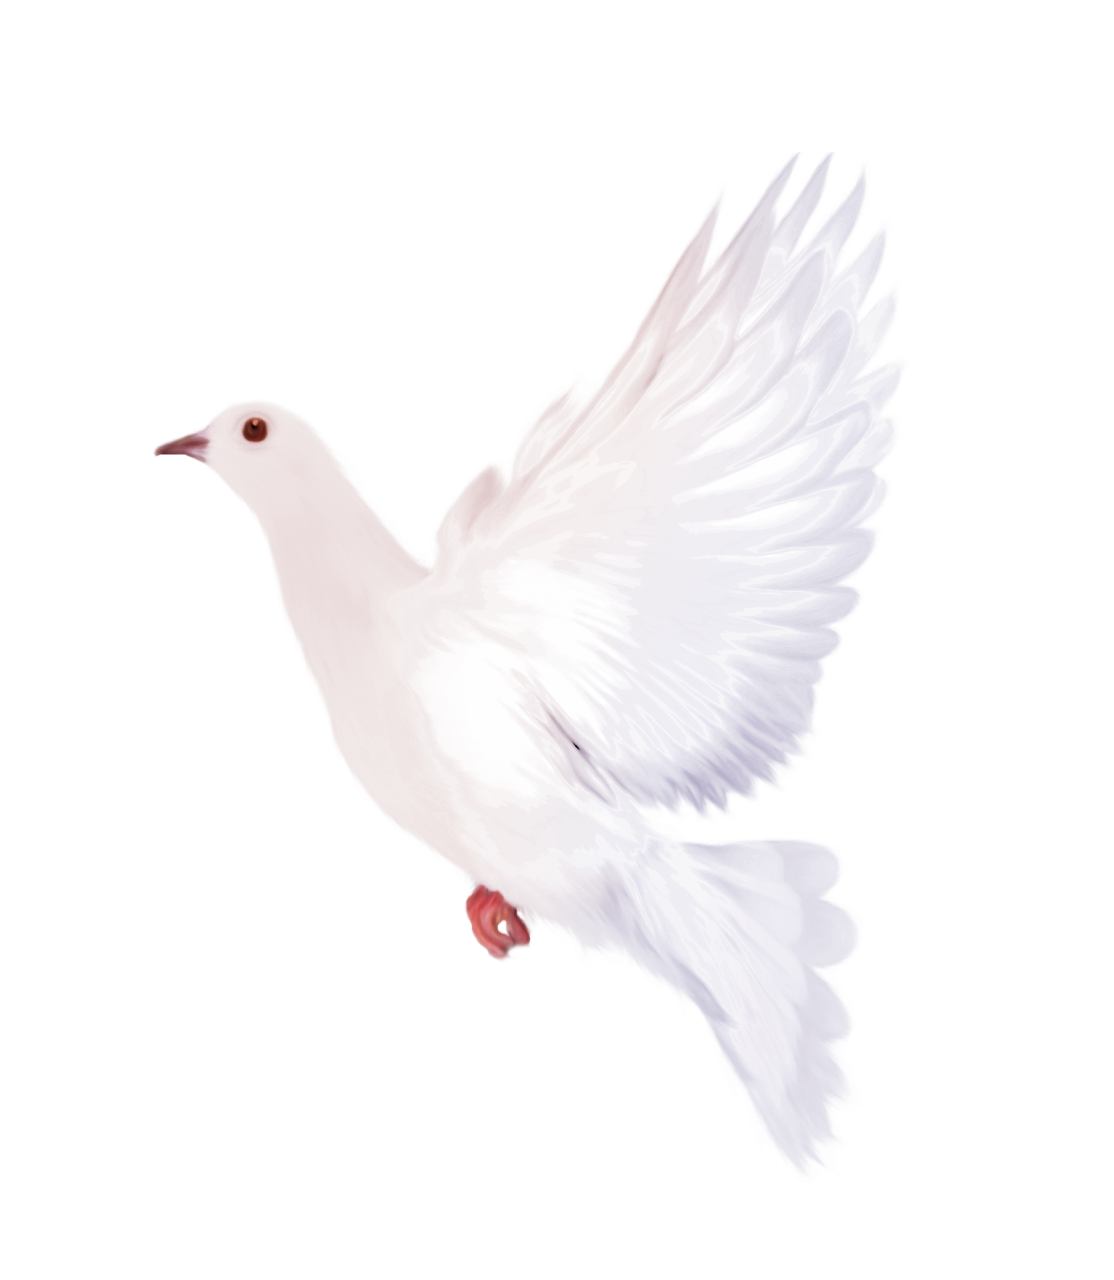 White Dove Clipart Gallery Yopriceville High Quality Images And Transparent Png Free Clipart Clip Art White Doves Clipart Gallery